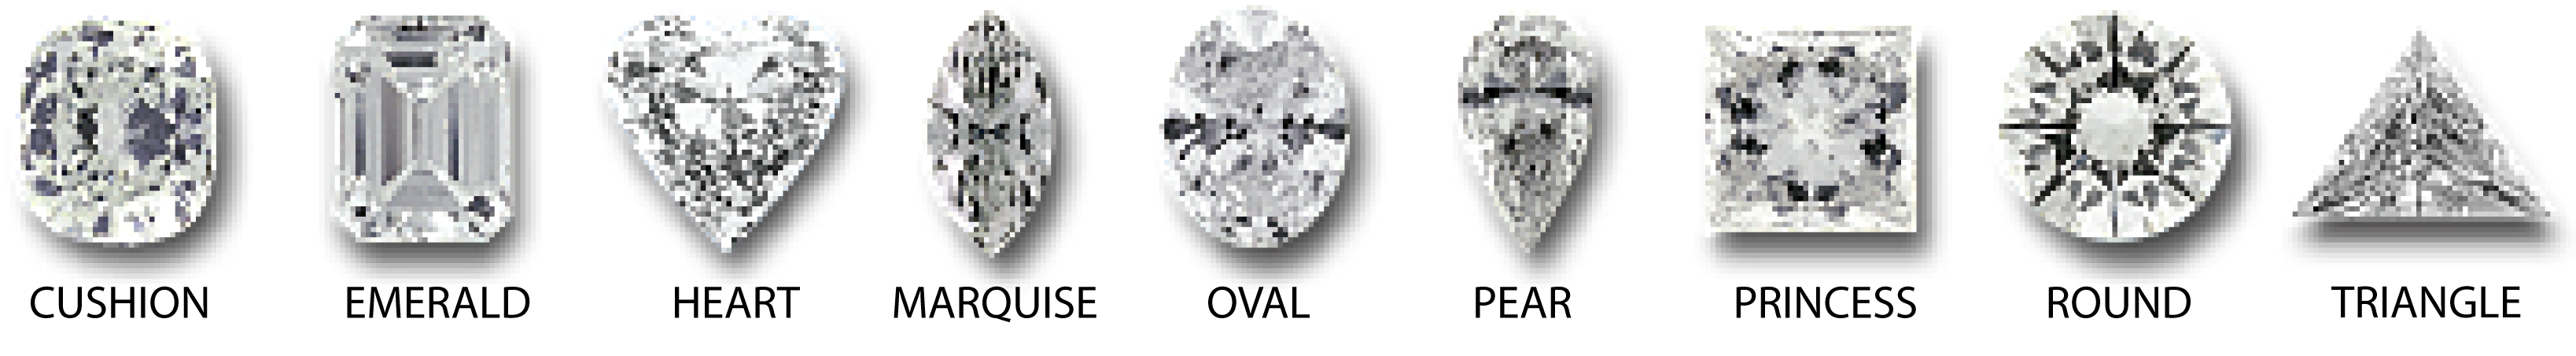 sample color ghi diamond glossary shapes different